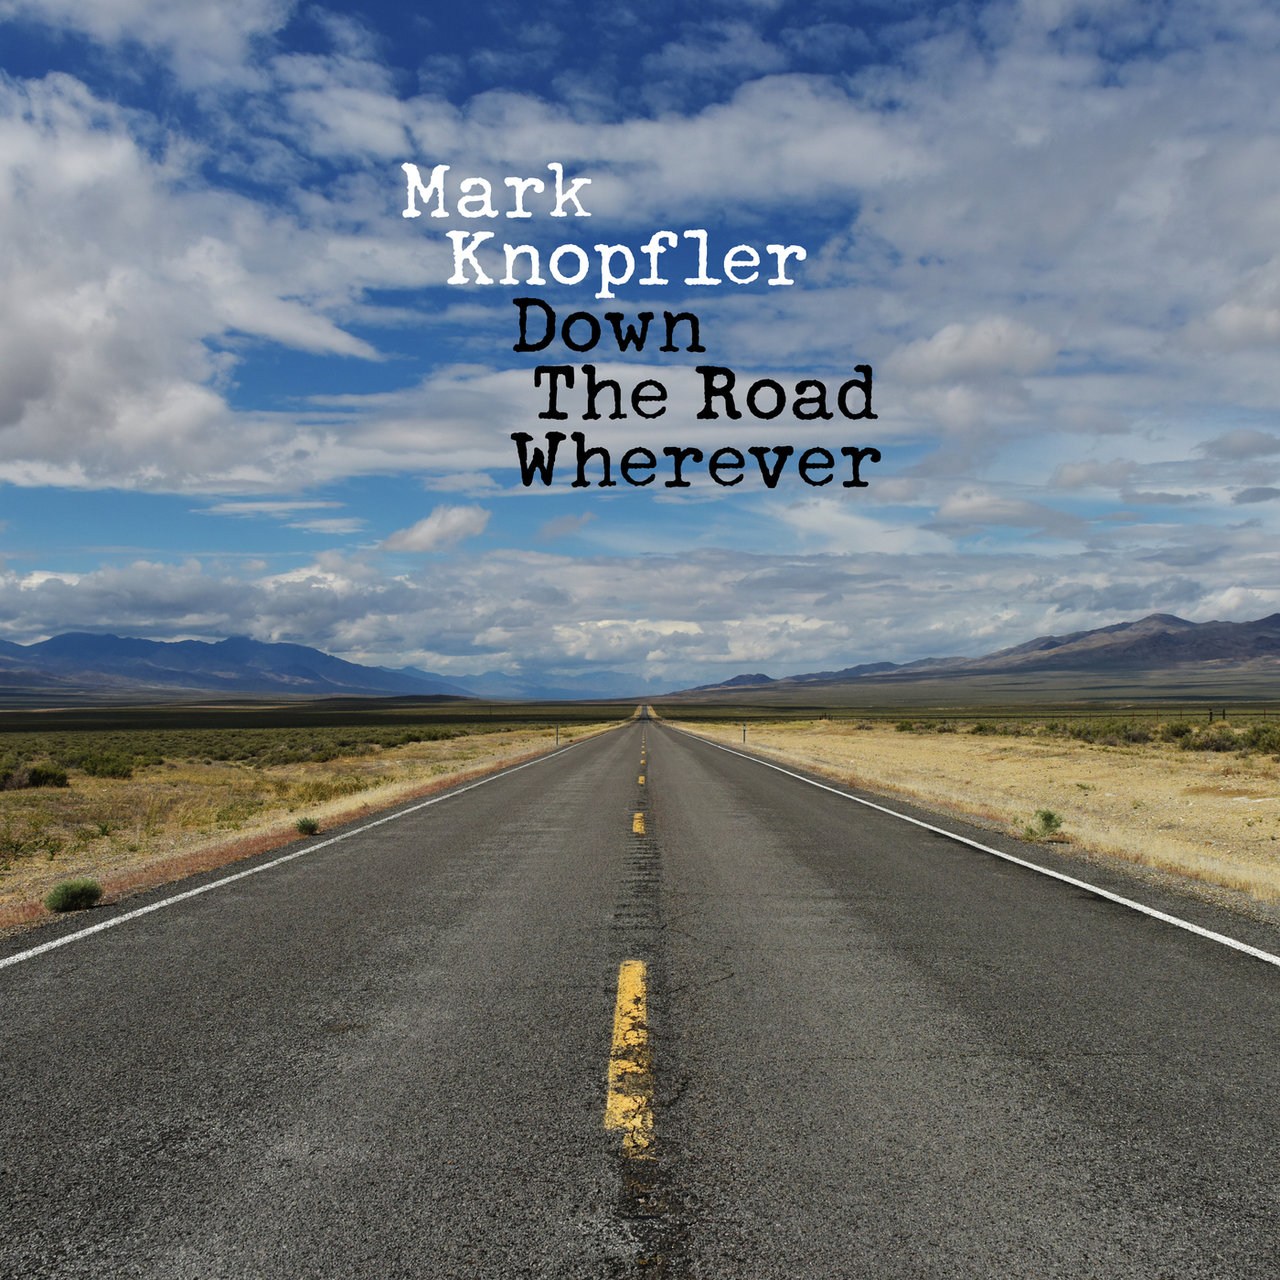 New Music Friday November 16th 2018 Indieheads Mark Knopfler Wiring Diagram Down The Road Wherever